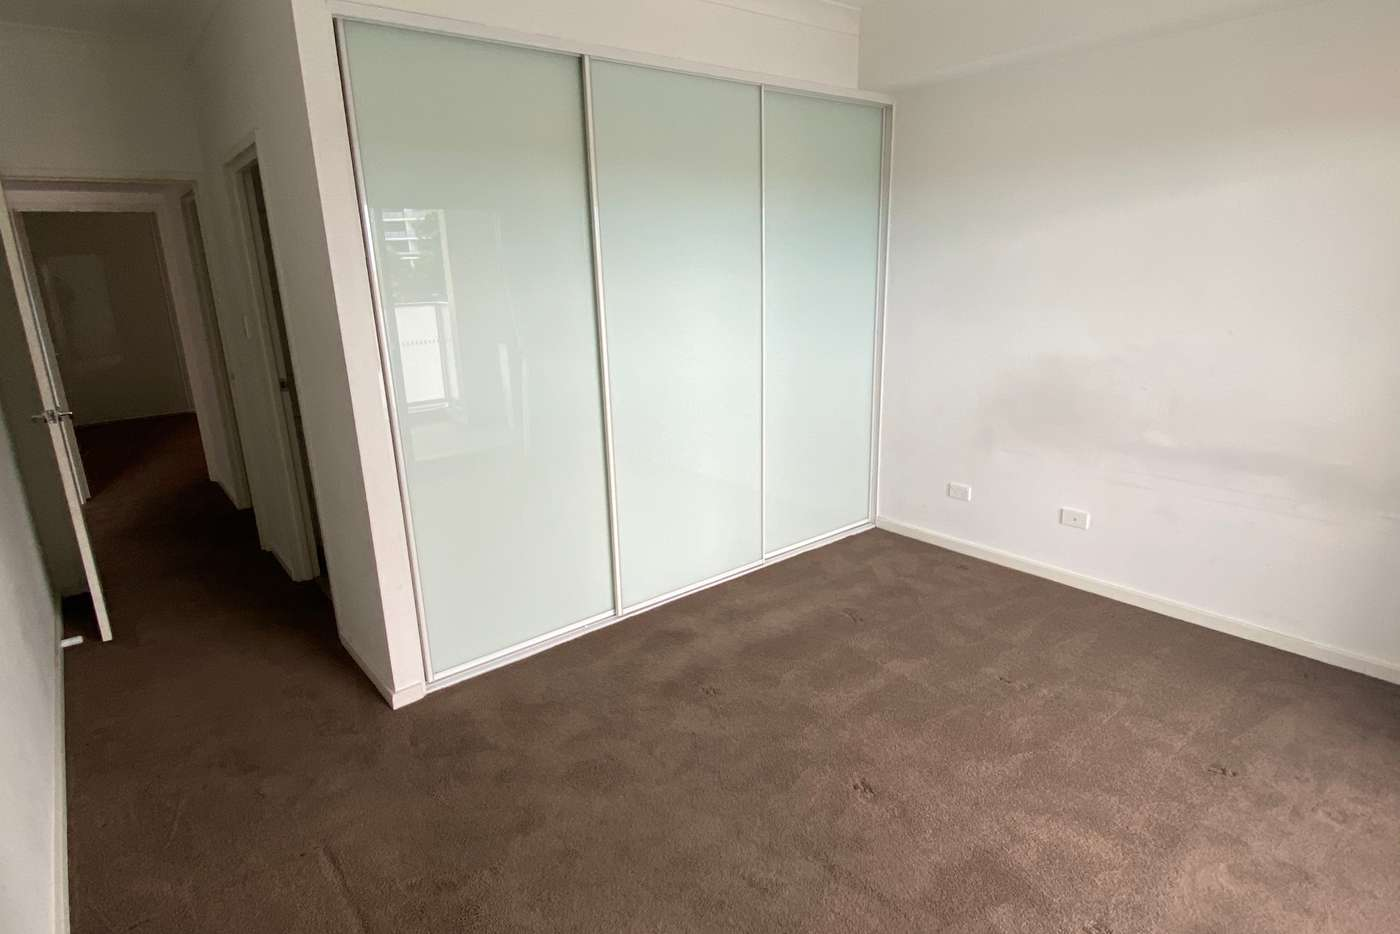 Seventh view of Homely apartment listing, 501/2A Lister Avenue, Rockdale NSW 2216